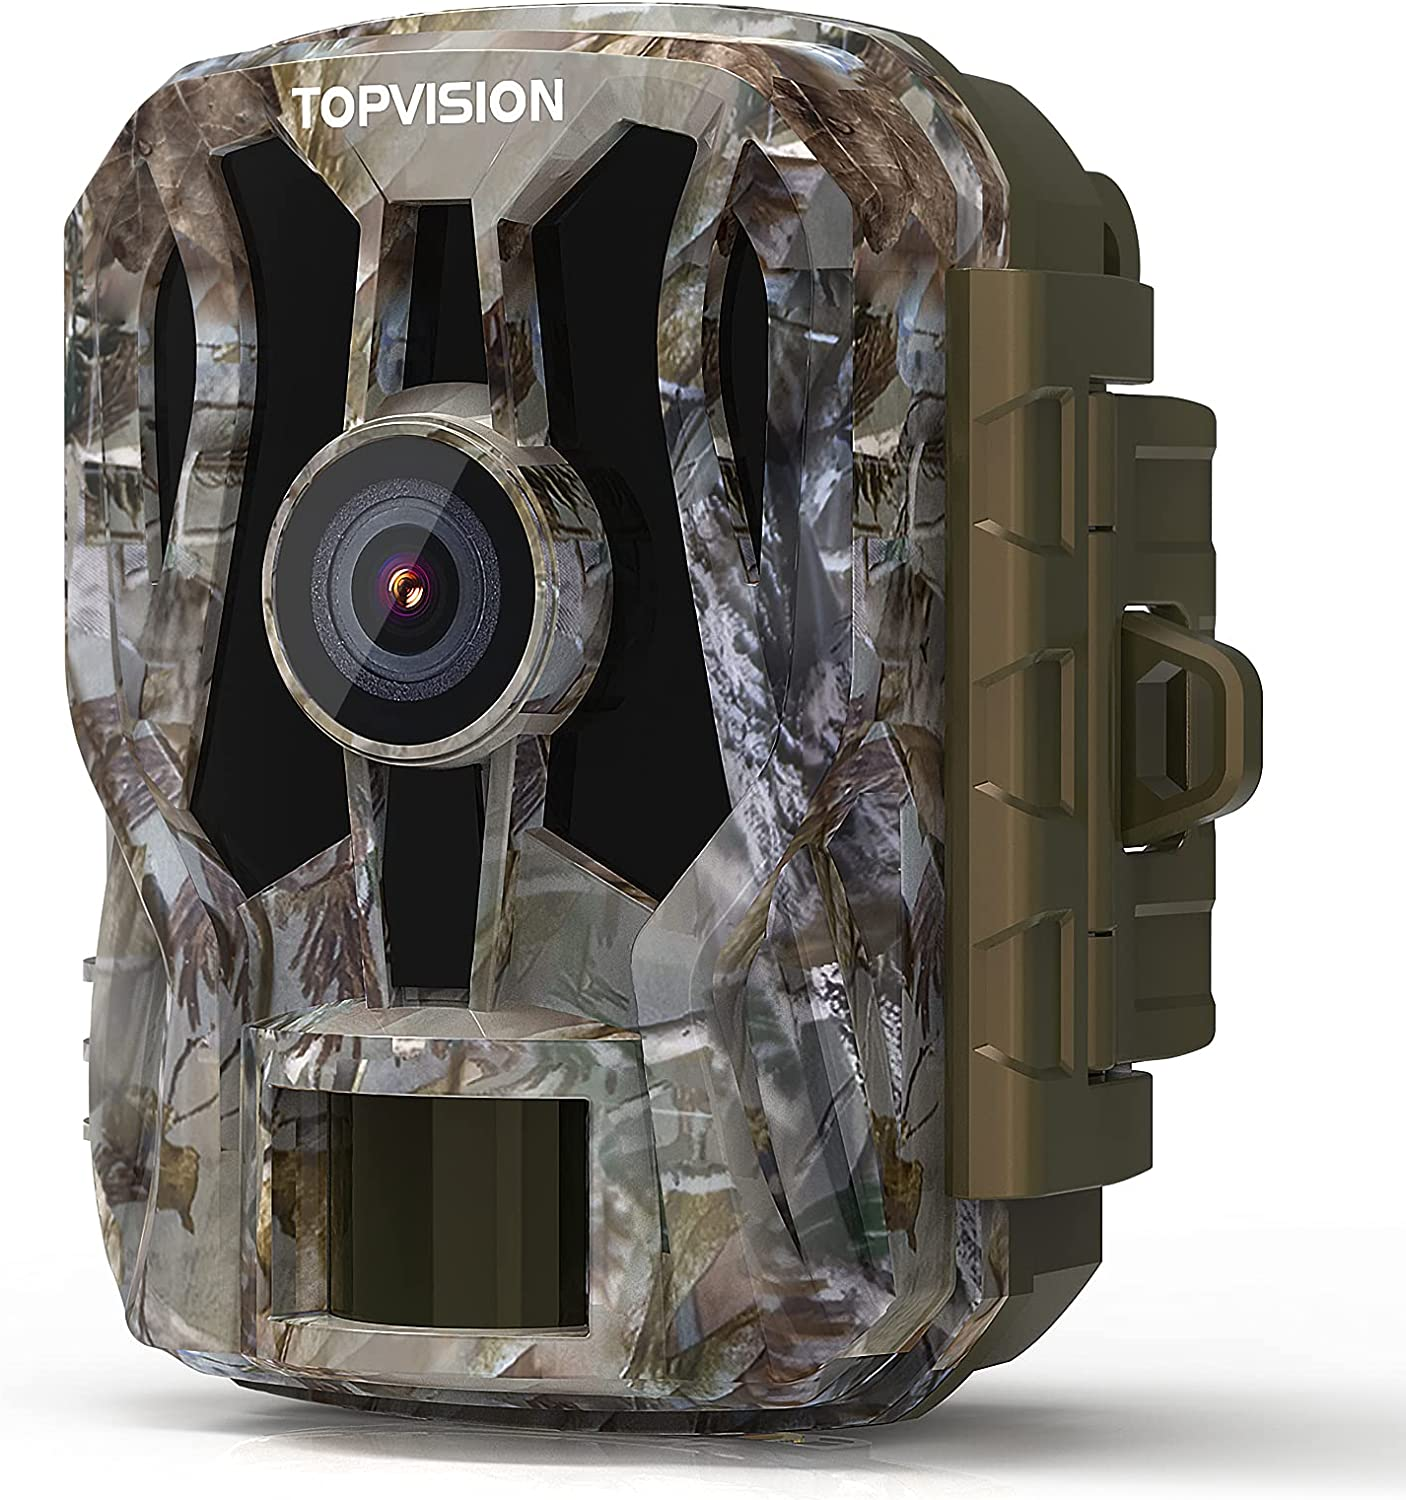 Mini Trail Camera Top shipfree vision 20MP Game Nig 1080P HD with Cheap super special price